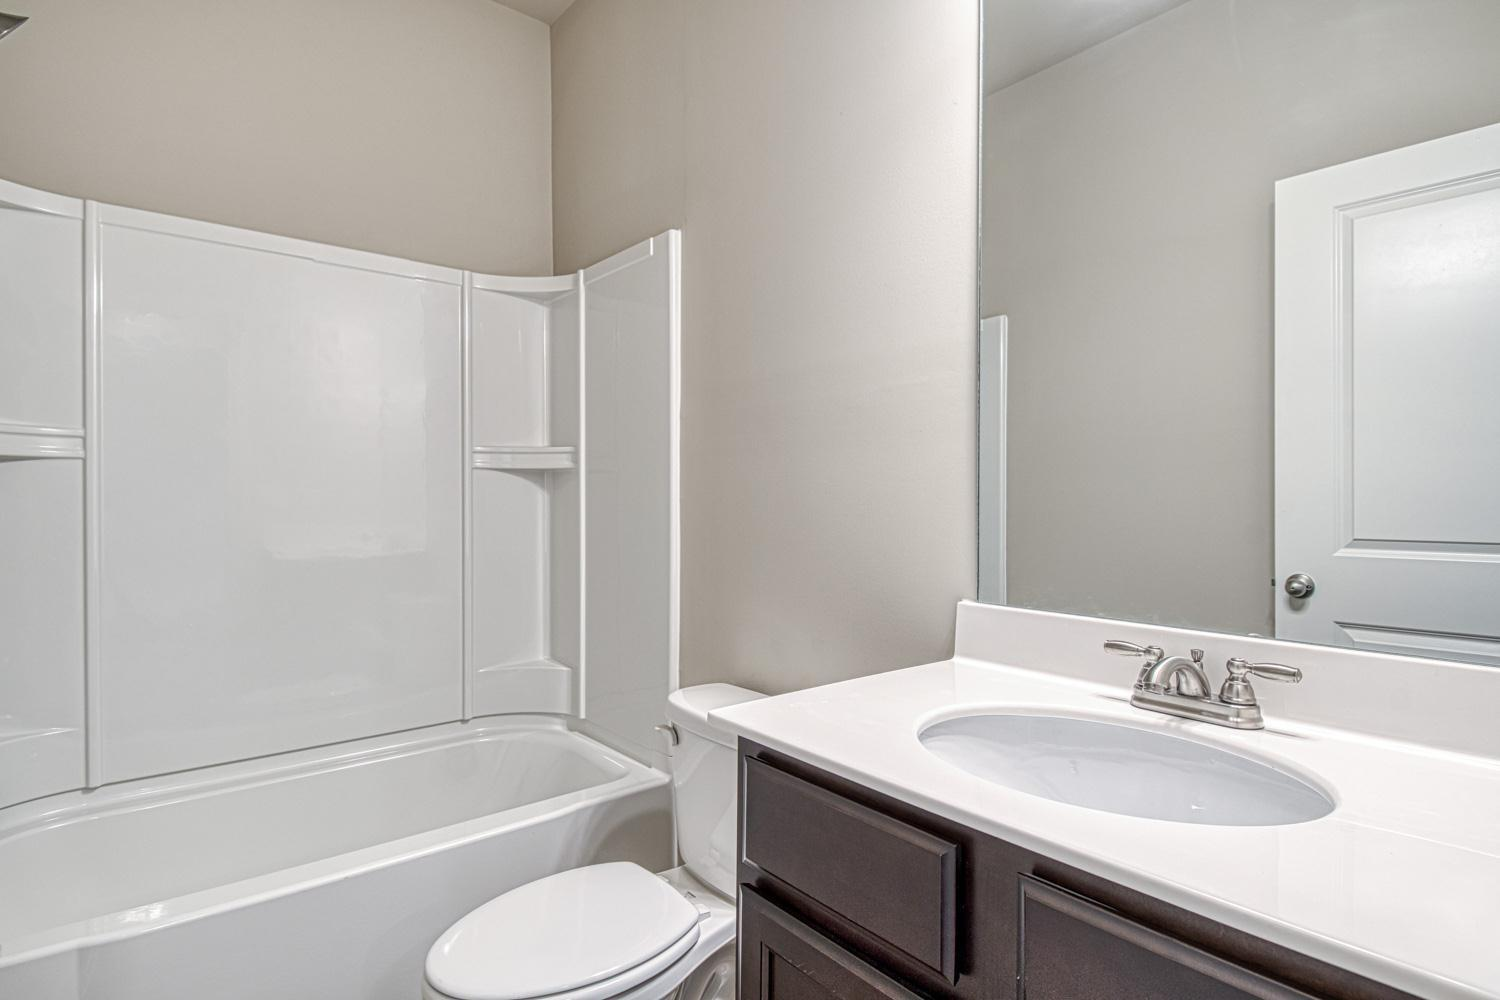 Bathroom featured in the Newport By Chafin Communities in Athens, GA